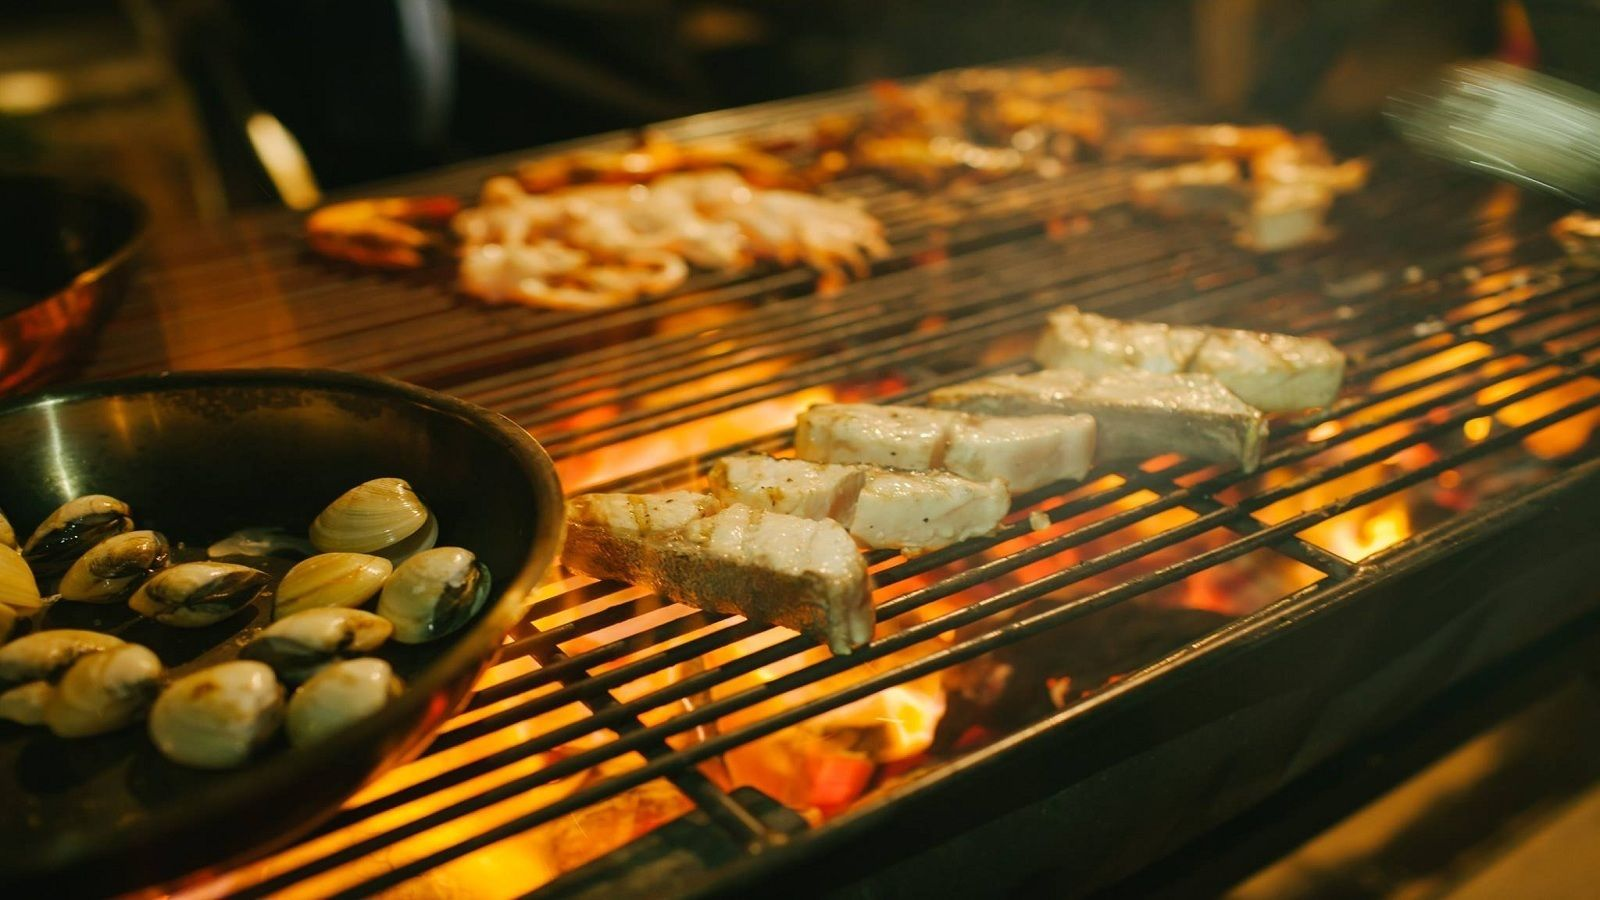 Food grilling on a BBQ in Nha Trang